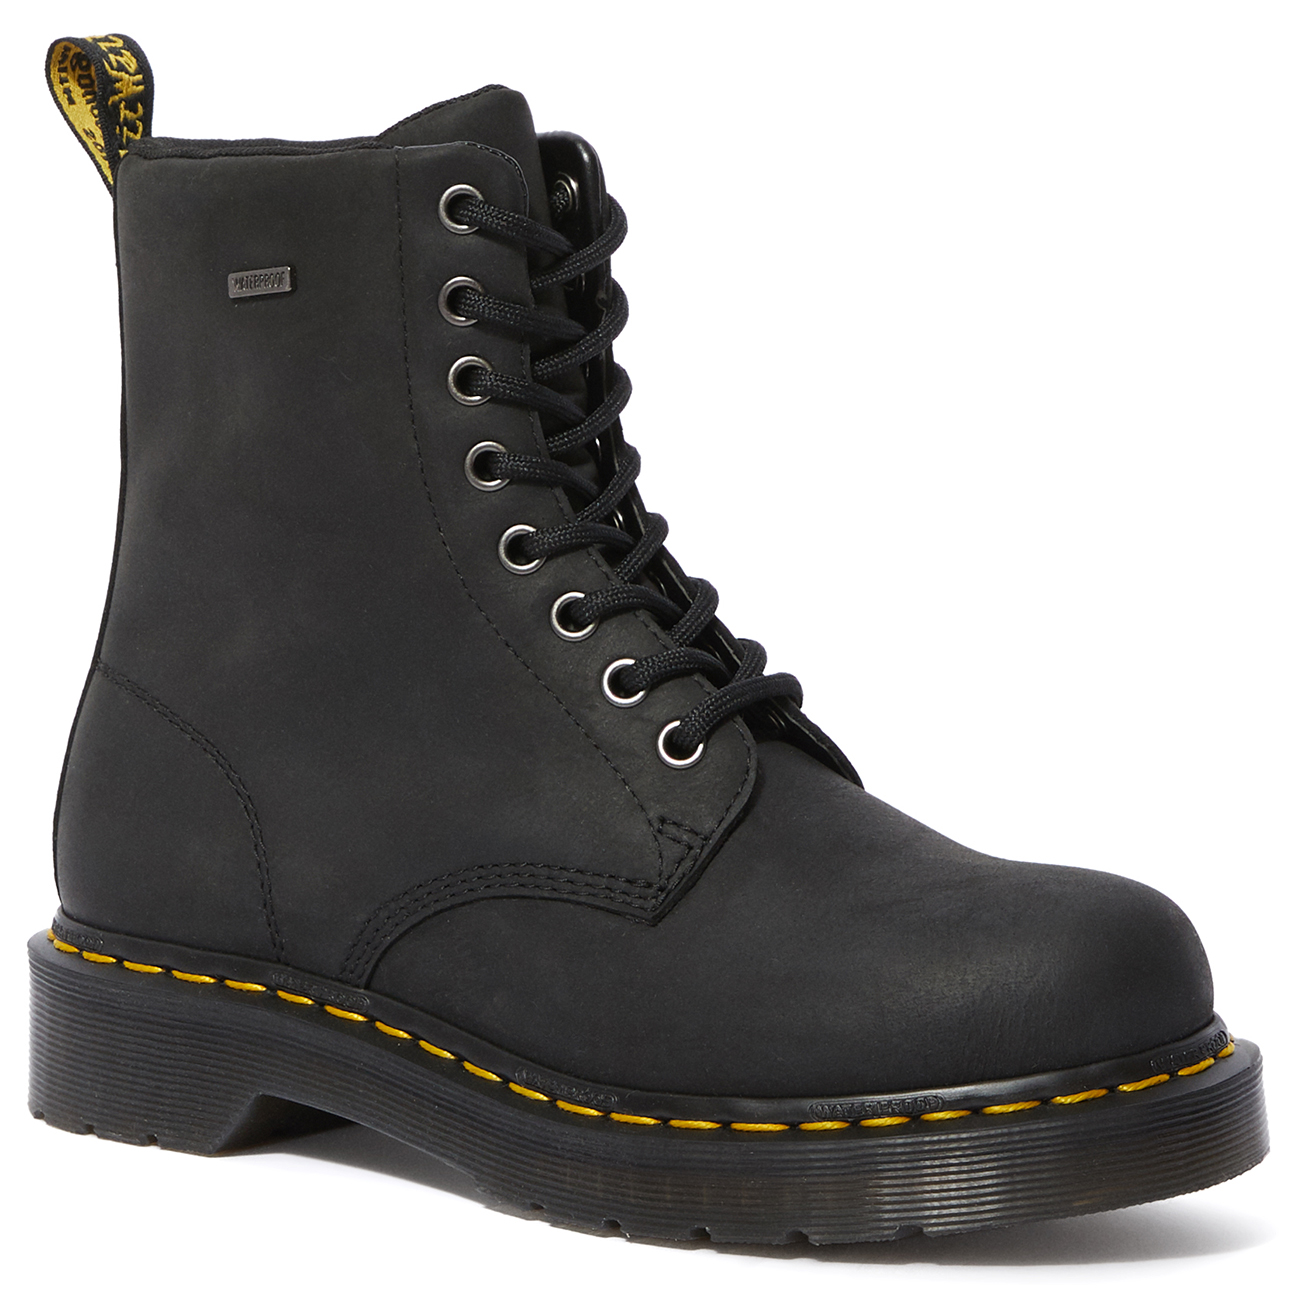 Dr Martens 1460 Republic Waterproof Boots